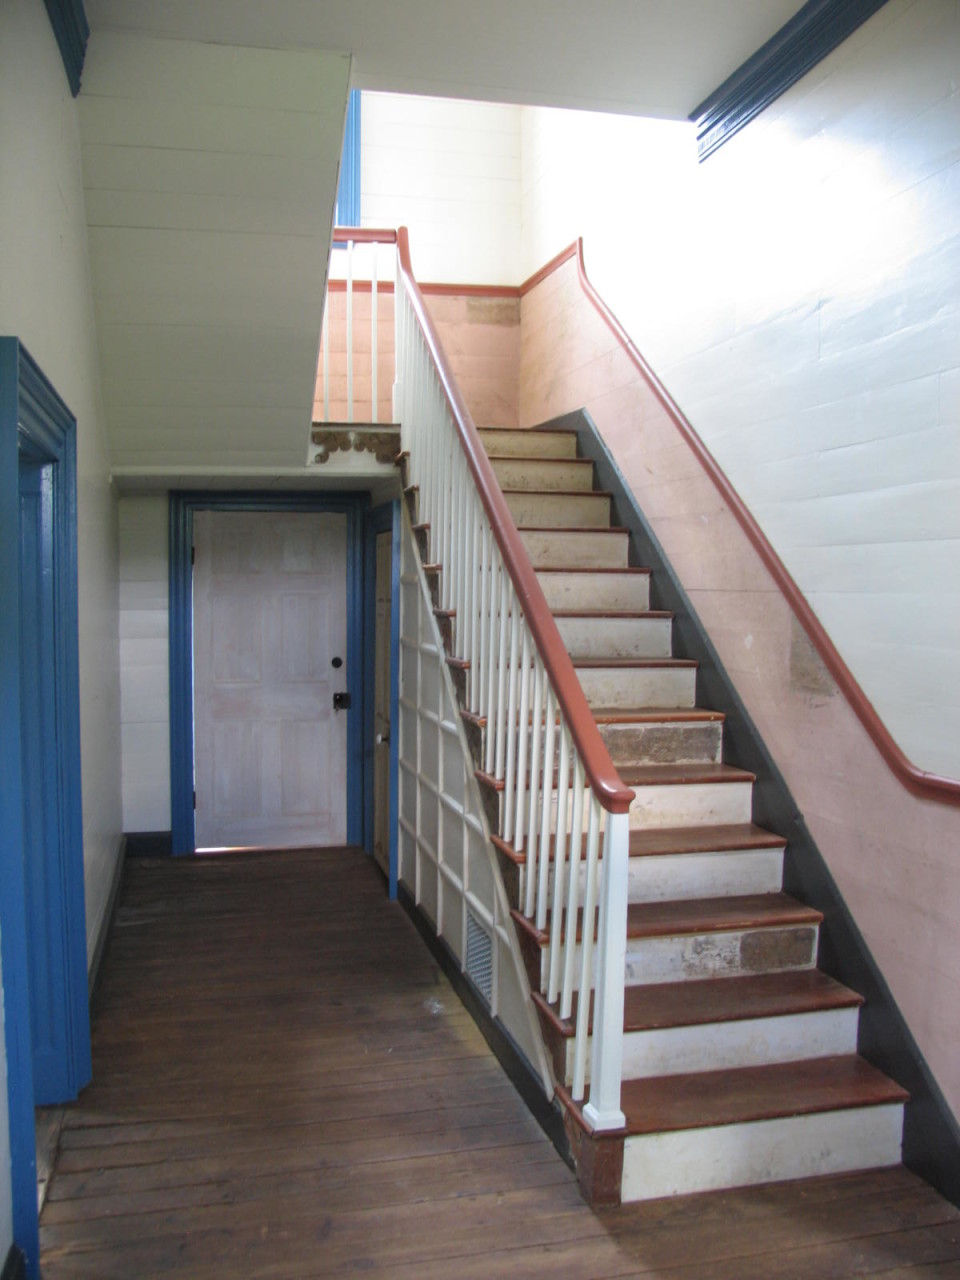 Restored entry hall and stair.  Specialty restoration painting ongoing.